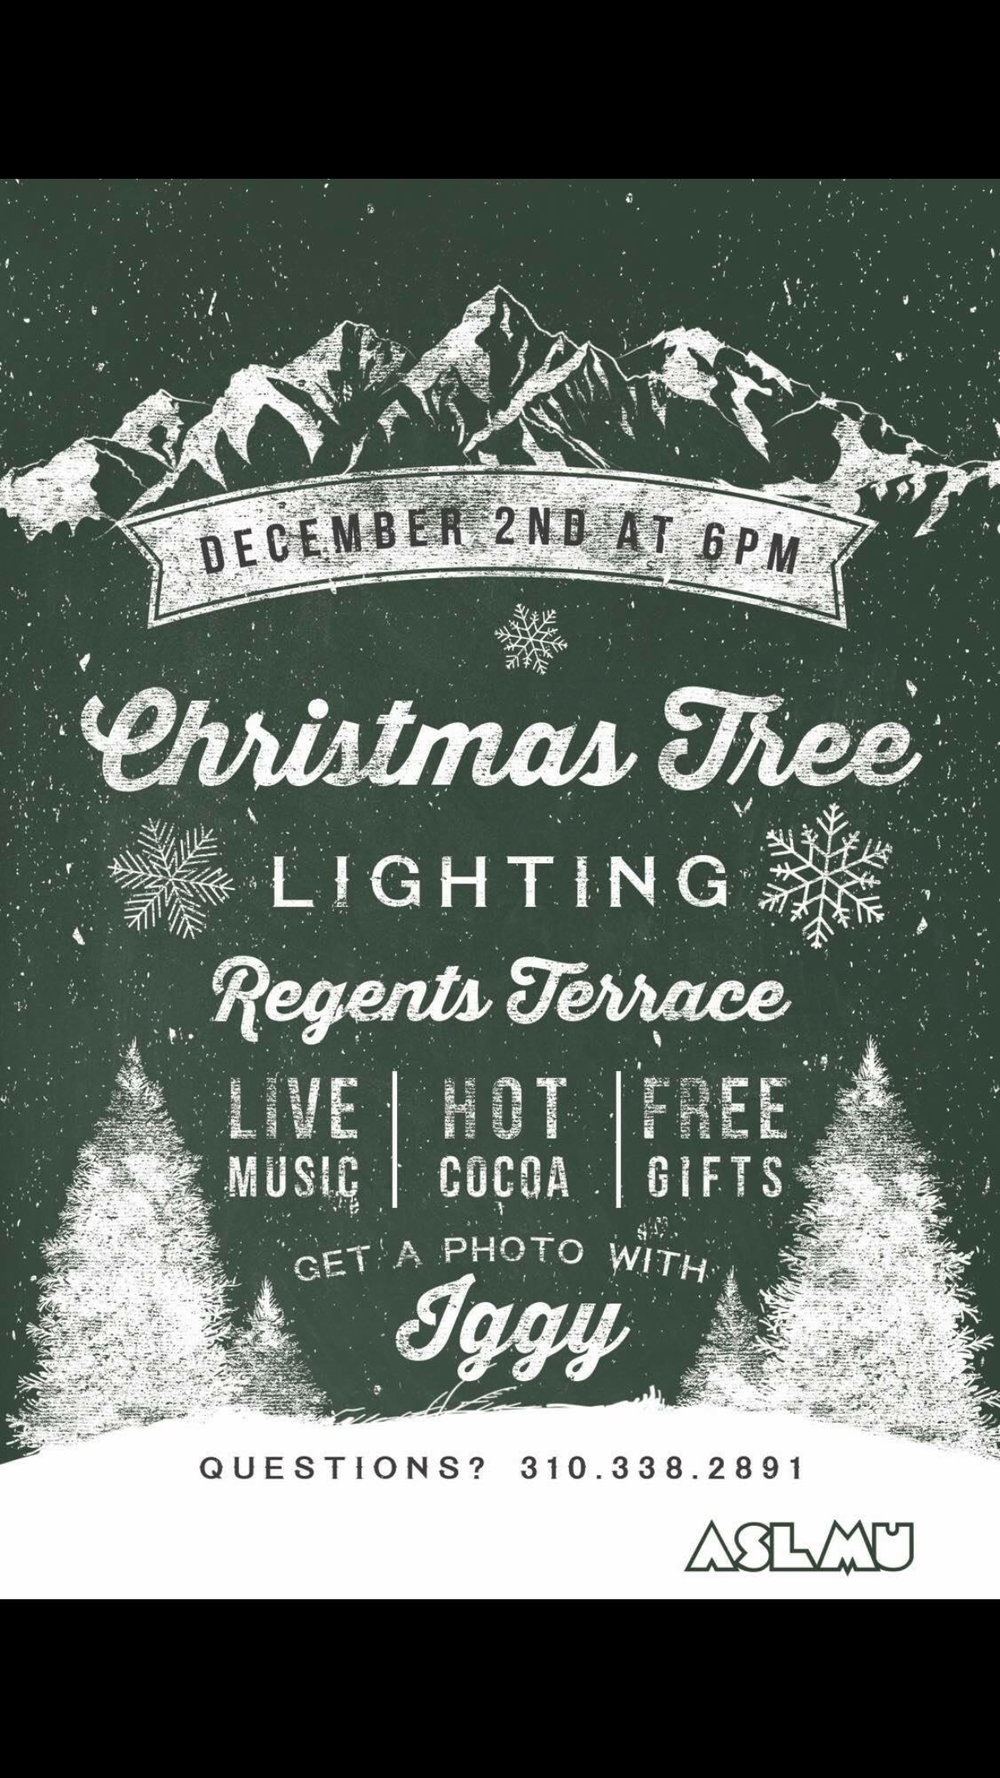 Hey Lions, come out this Friday, December 2 to celebrate the holiday season!! This year's Christmas Tree Lighting will be at 6pm on Regents Terrace. Come watch LMU light the tree, take pictures with Iggy, enjoy hot cocoa, and many other fun filled events for the evening! You won't want to miss this magical night!! Hope to see you there!